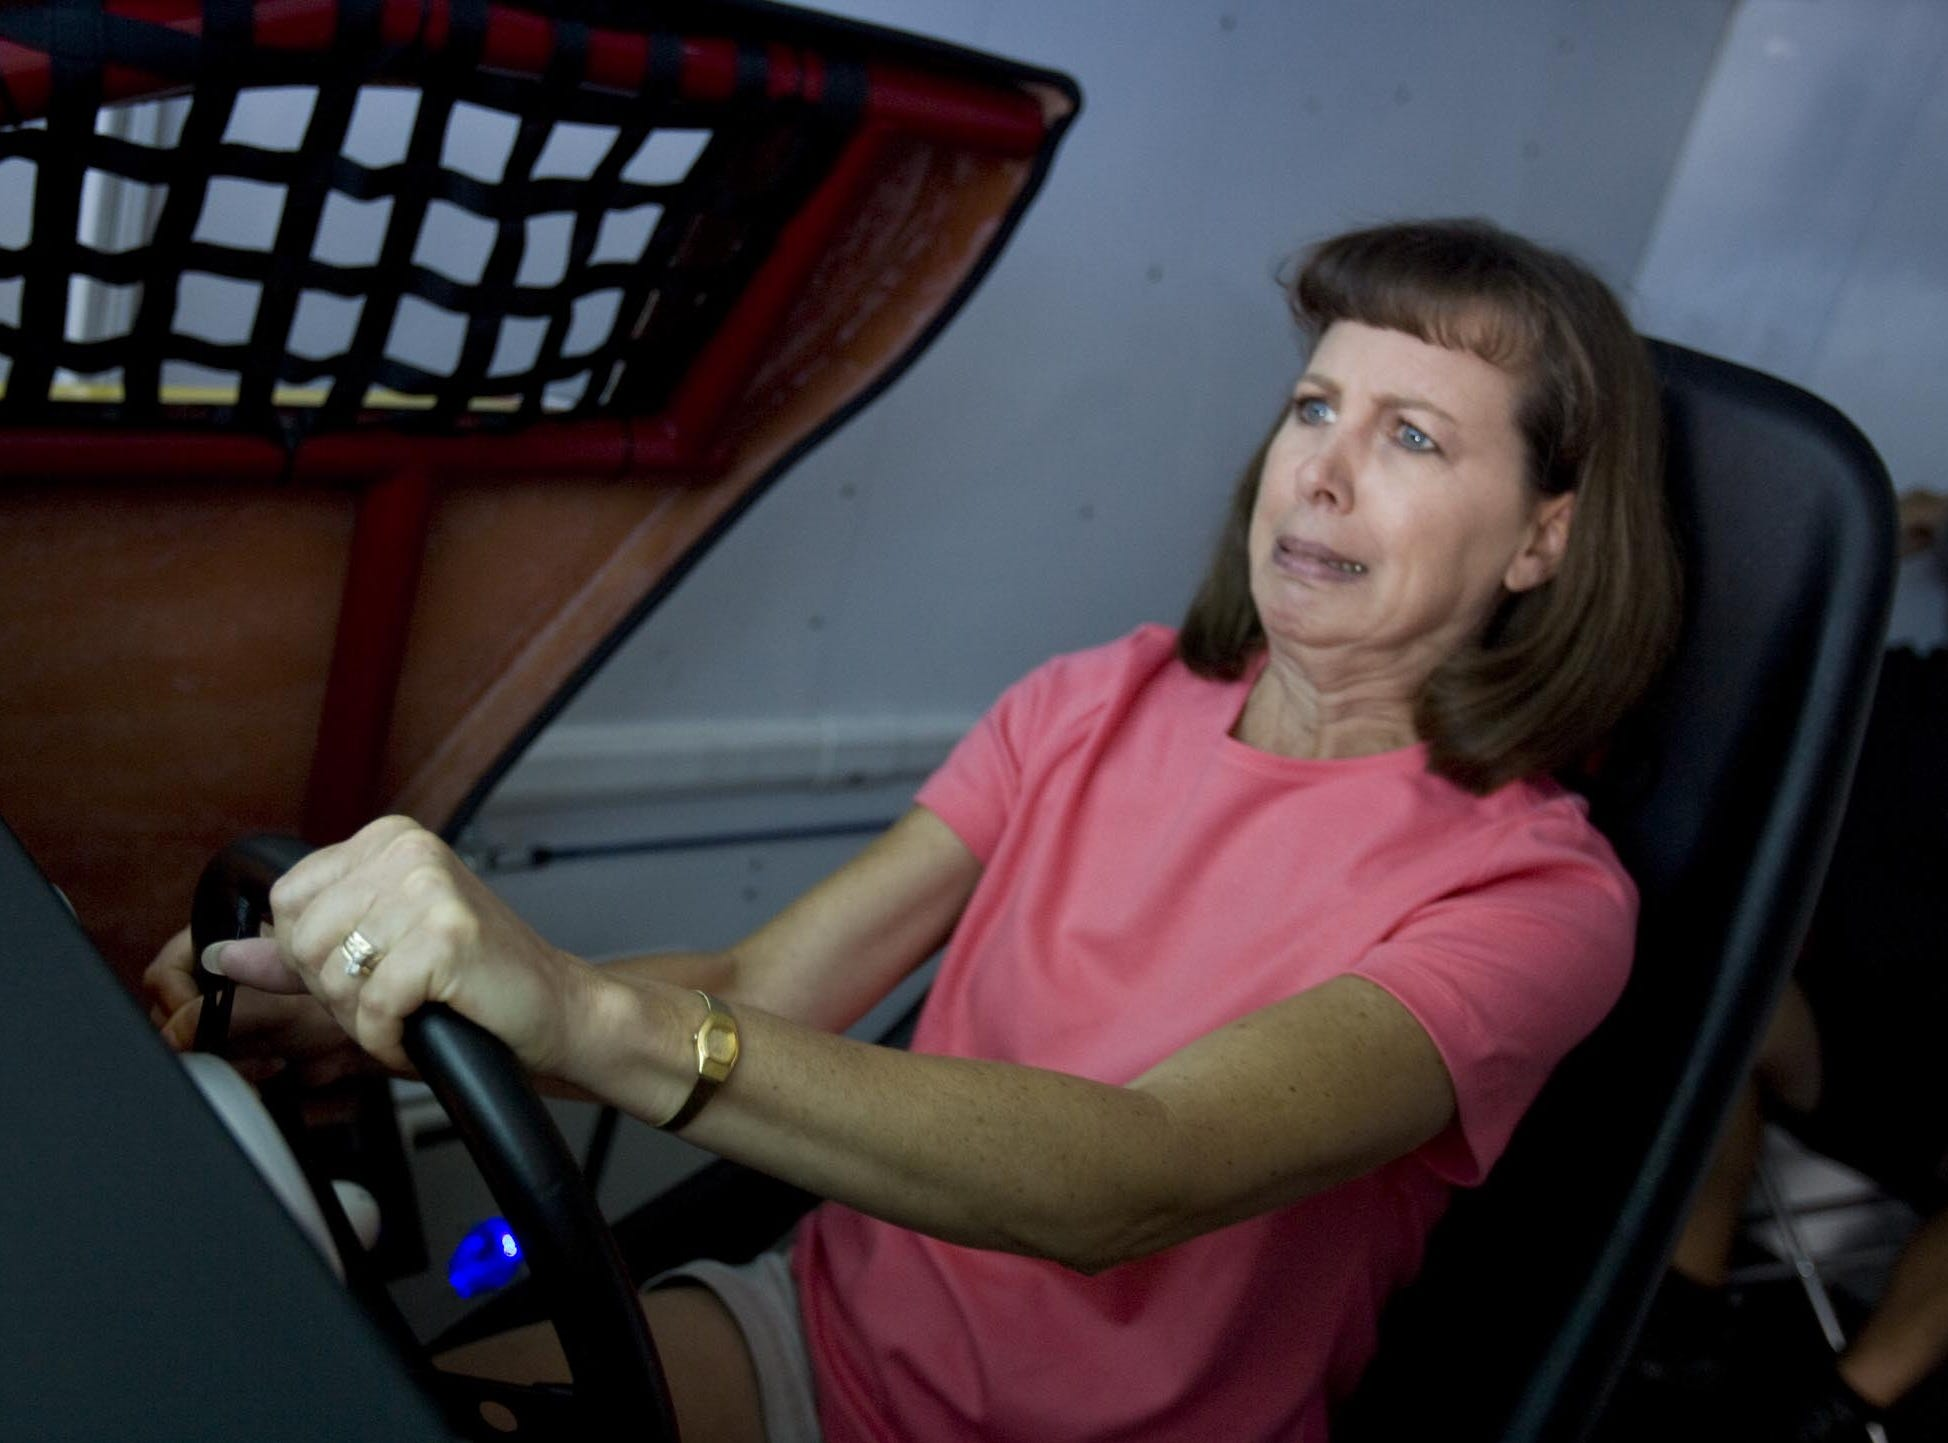 """I swear I don't drive like this on the road,"" joked Donna Ferrill of Fairdale as she grimaced while driving in the Toyota NASCAR simulator Sunday at the Kentucky State Fair."